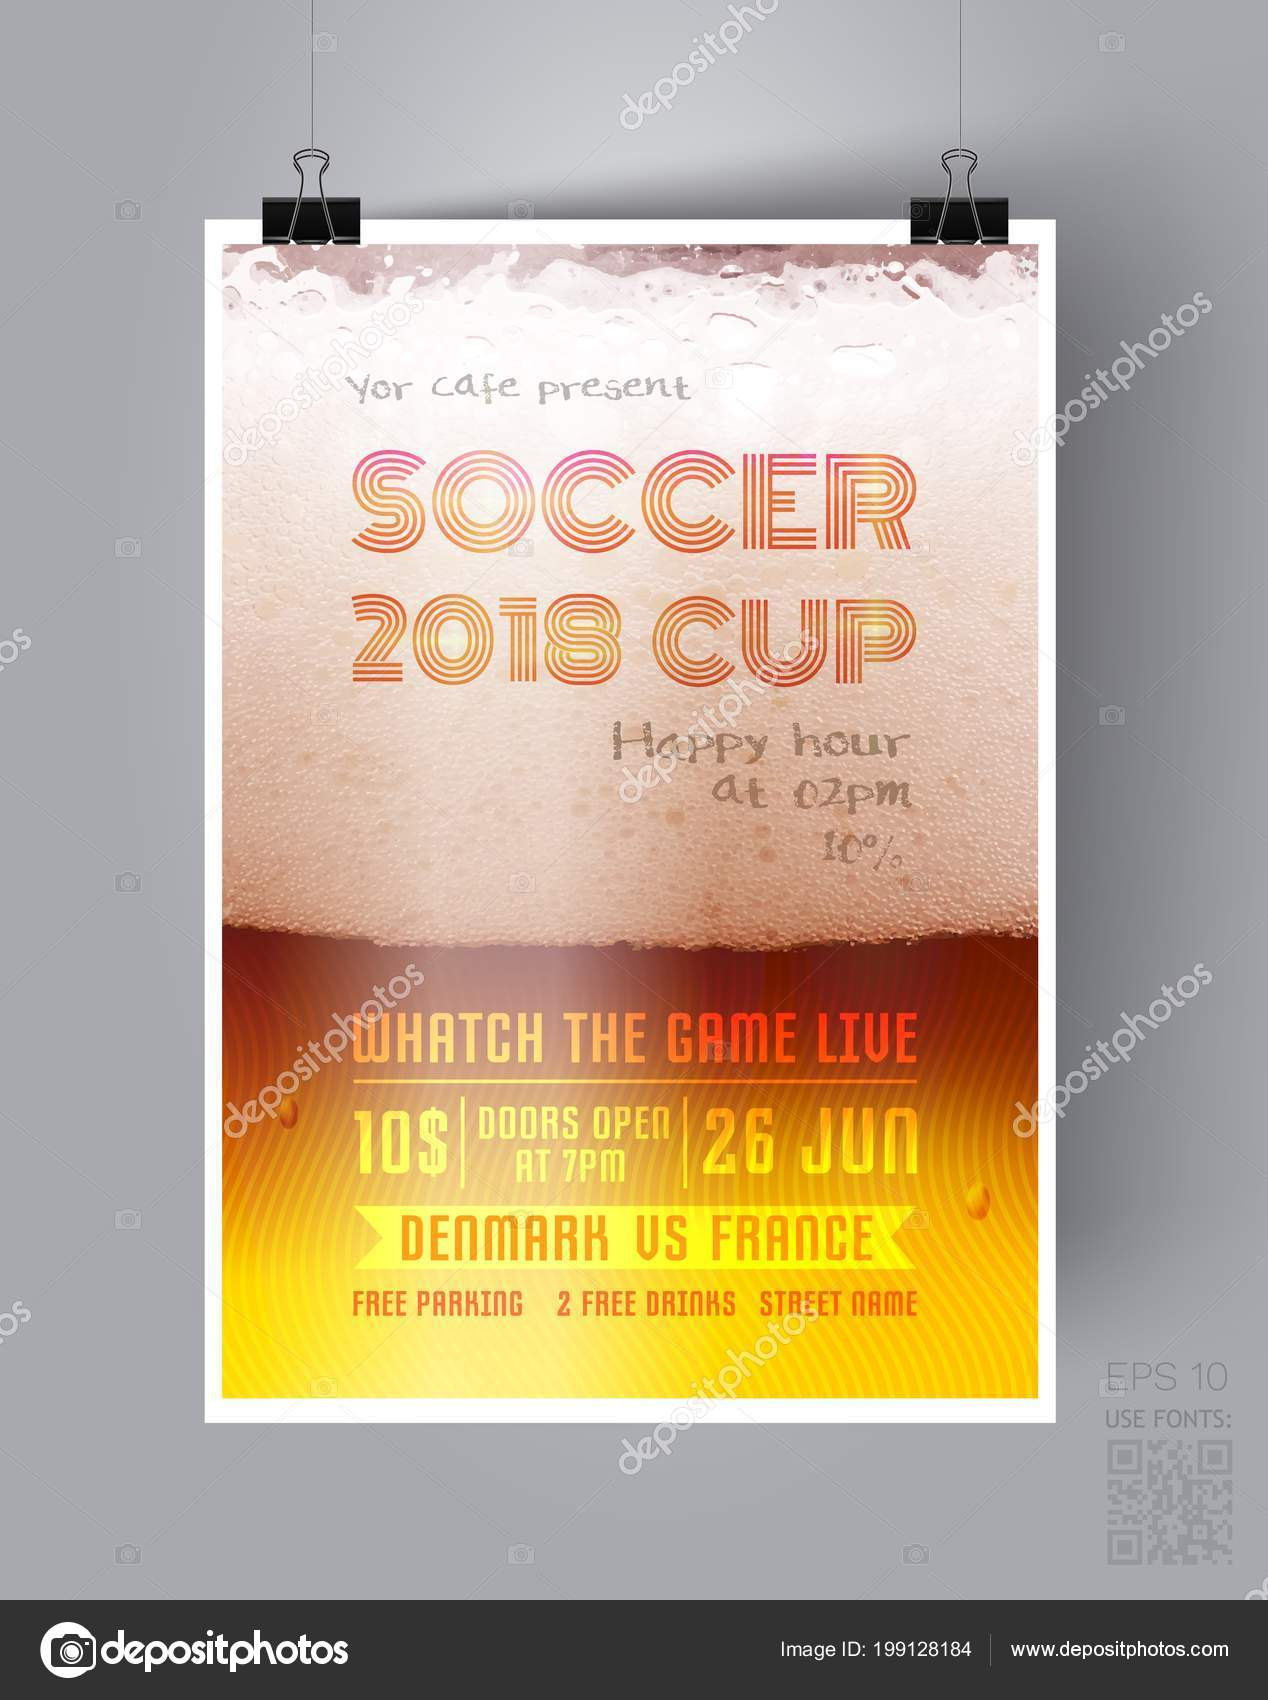 Soccer Cup 2018 Flyer Template On The Background Of A Beer Glass